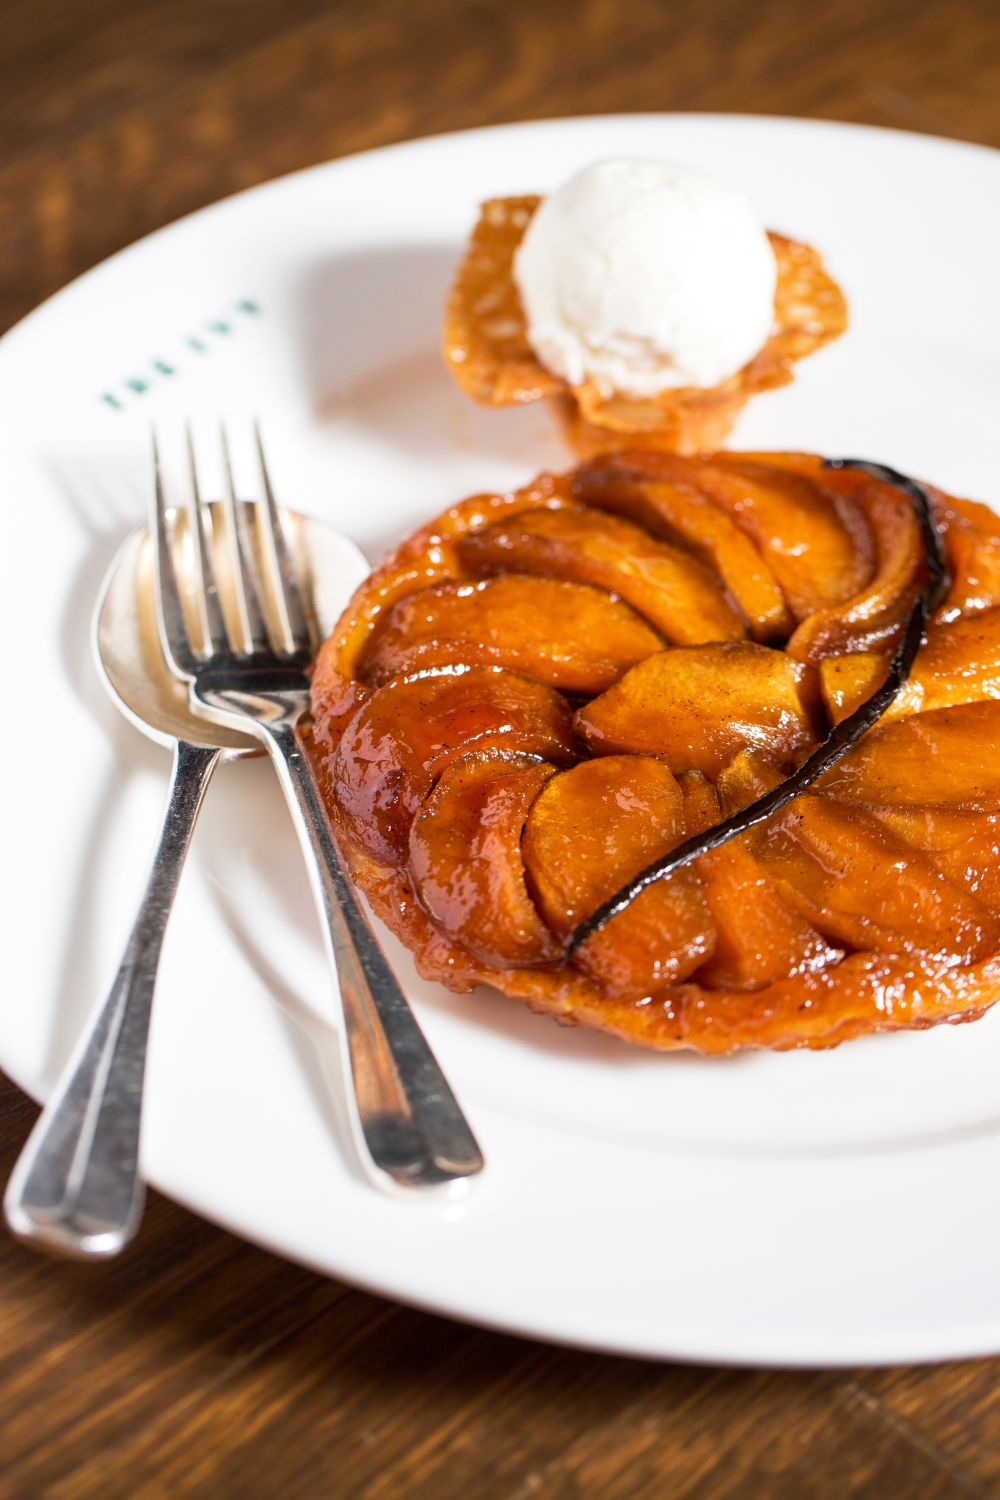 The-Ivy_Apple-Tartin-(for-two)-Vanilla-ice-cream.jpg